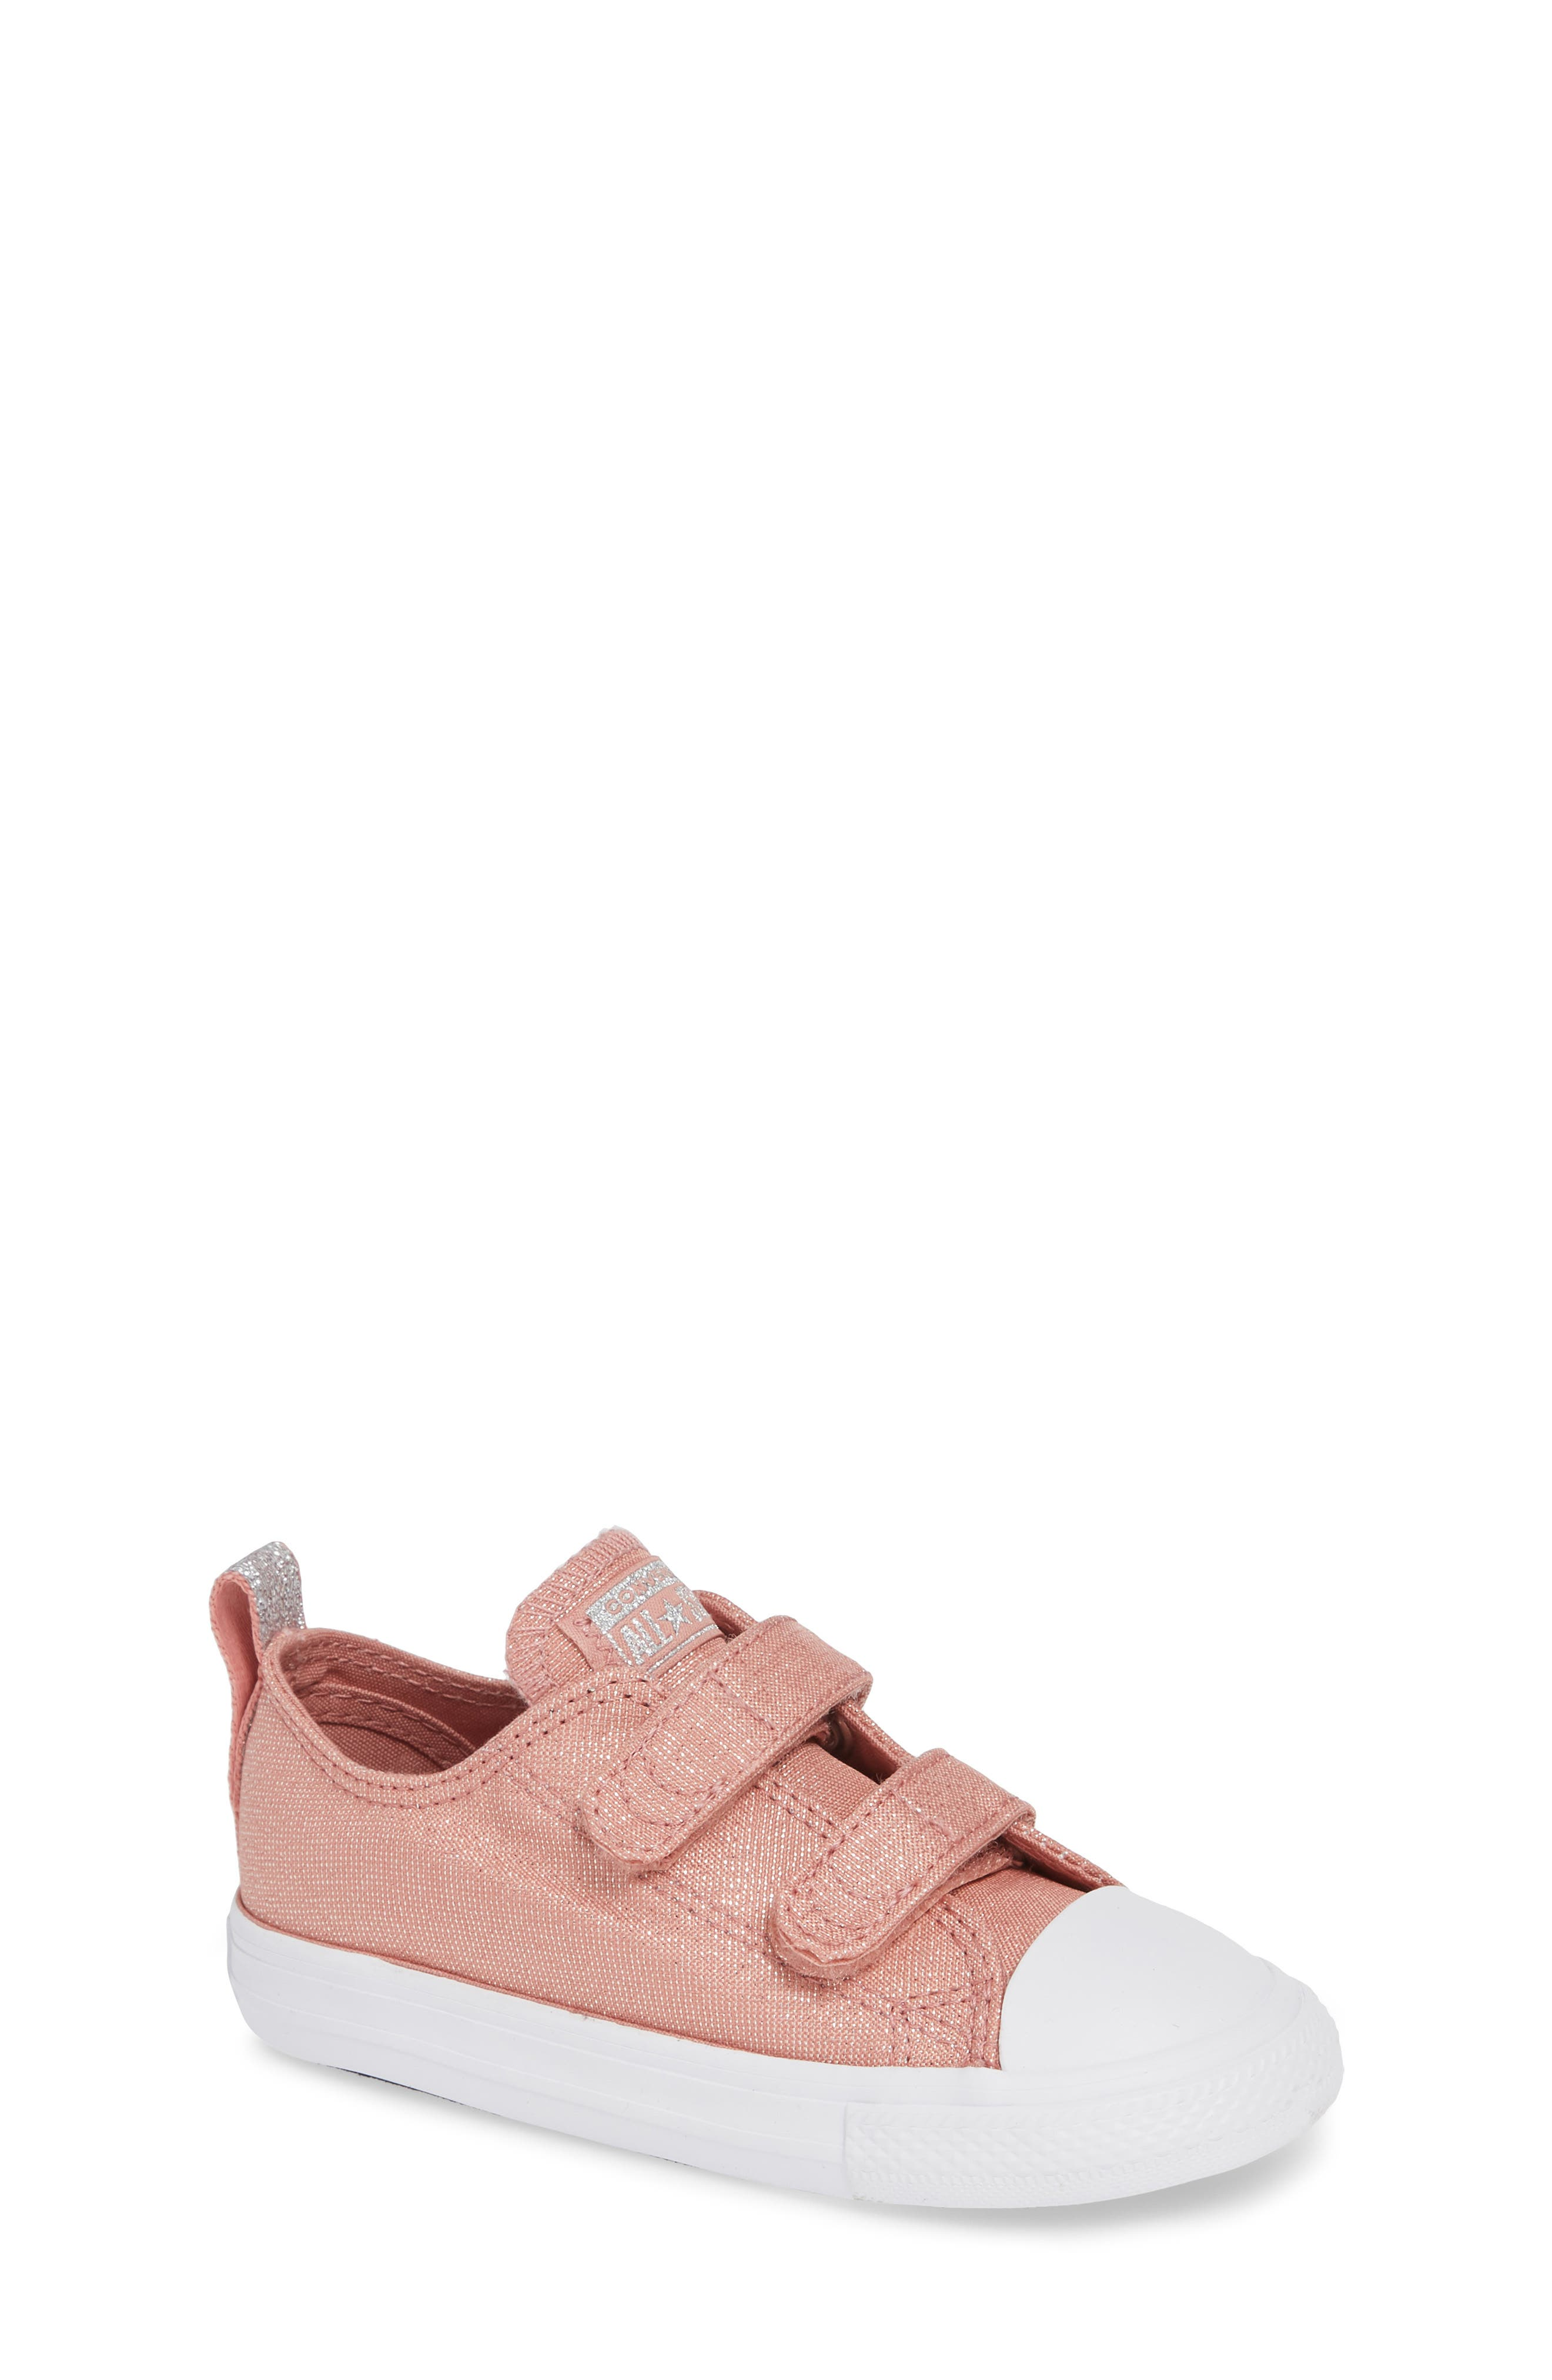 All Star<sup>®</sup> Fairy Dust Sneaker,                         Main,                         color, RUST PINK